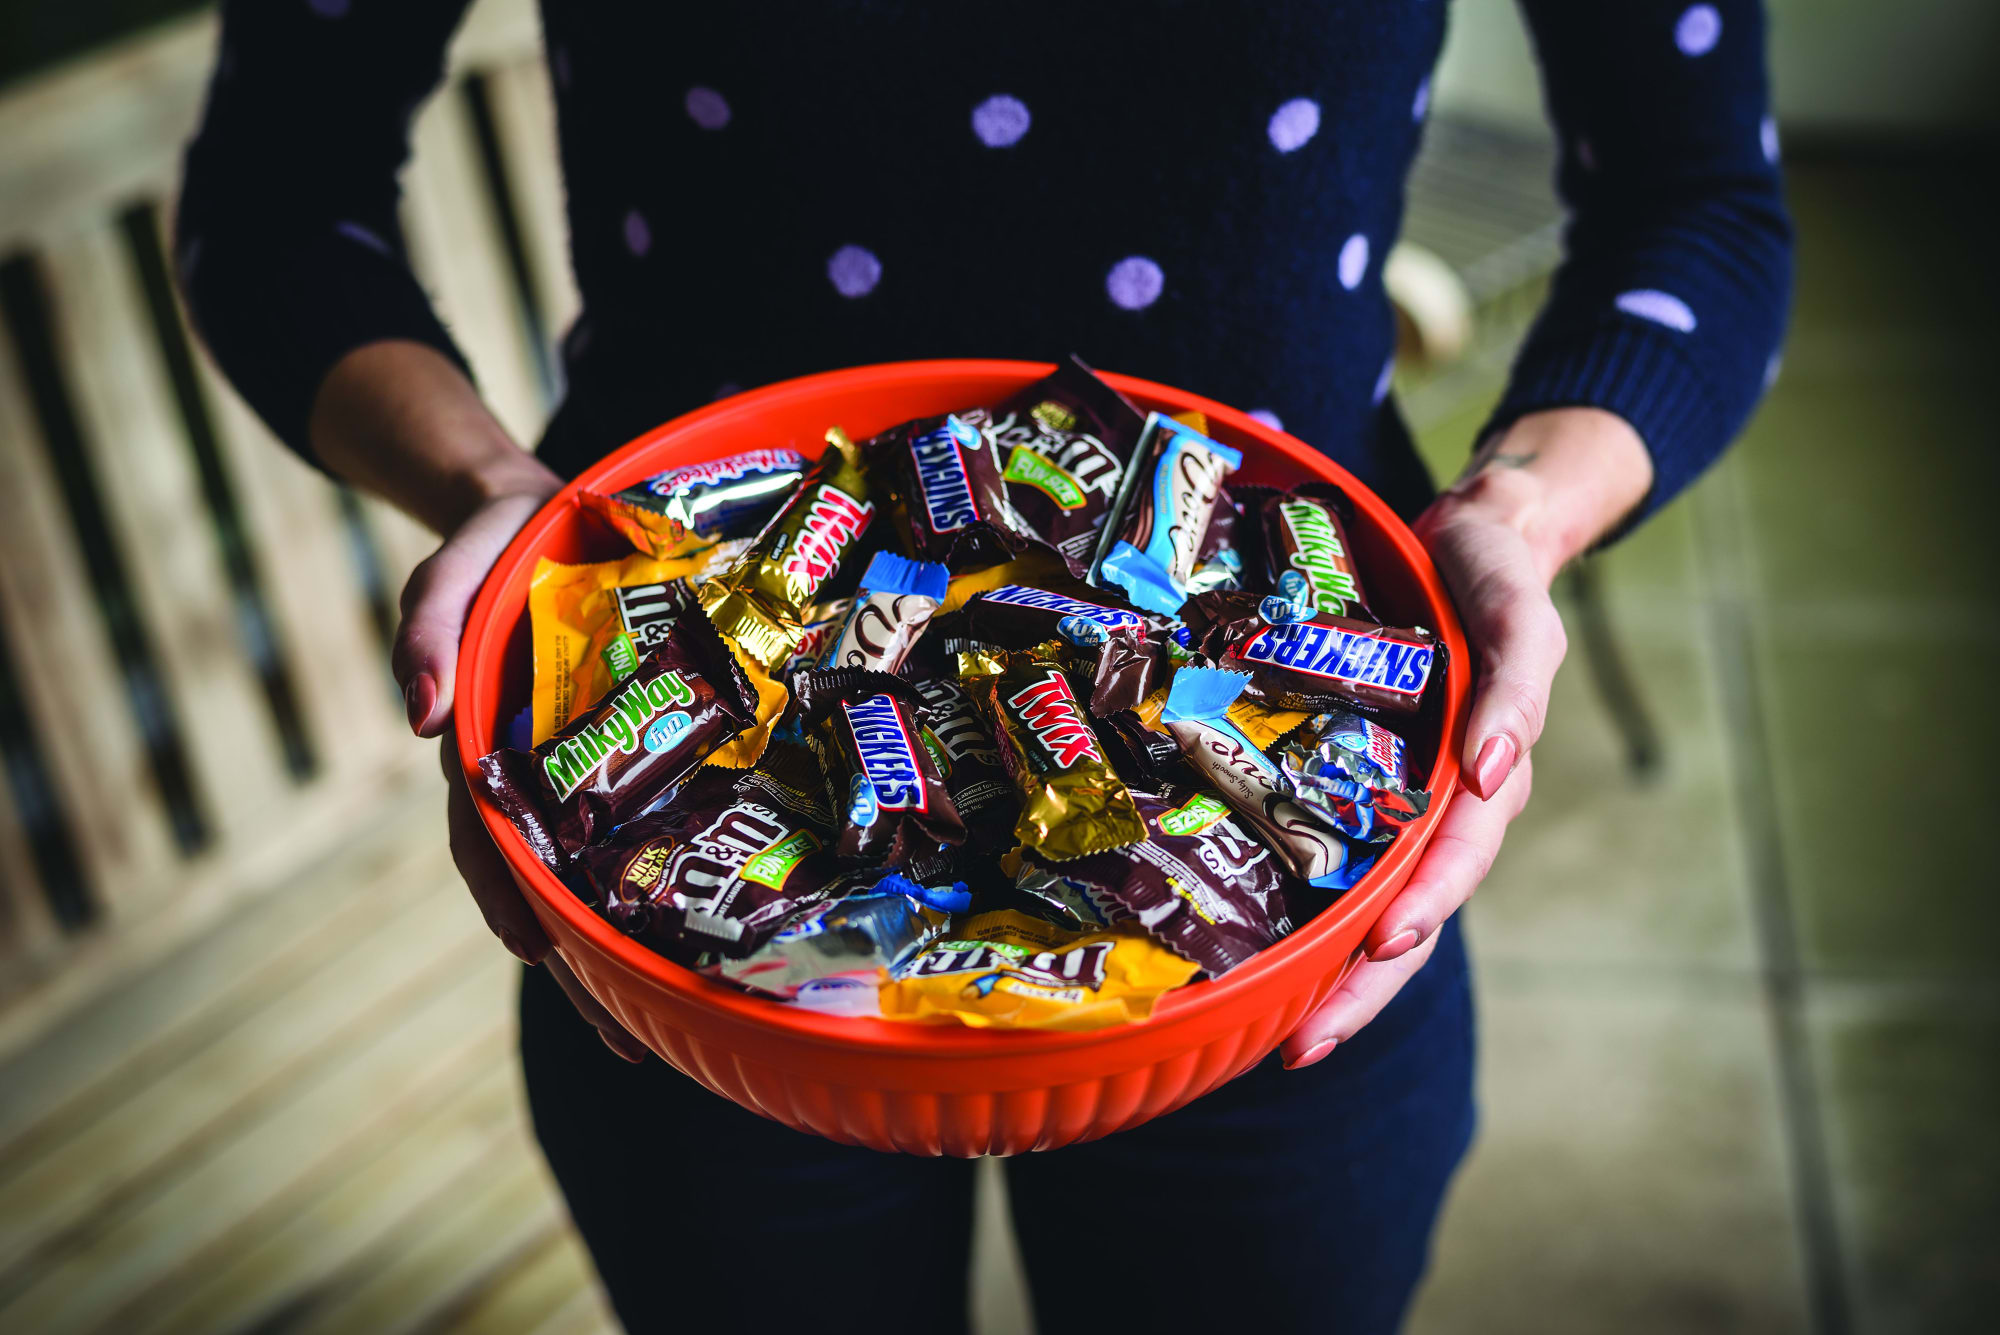 Which Halloween candy do parents steal the most?